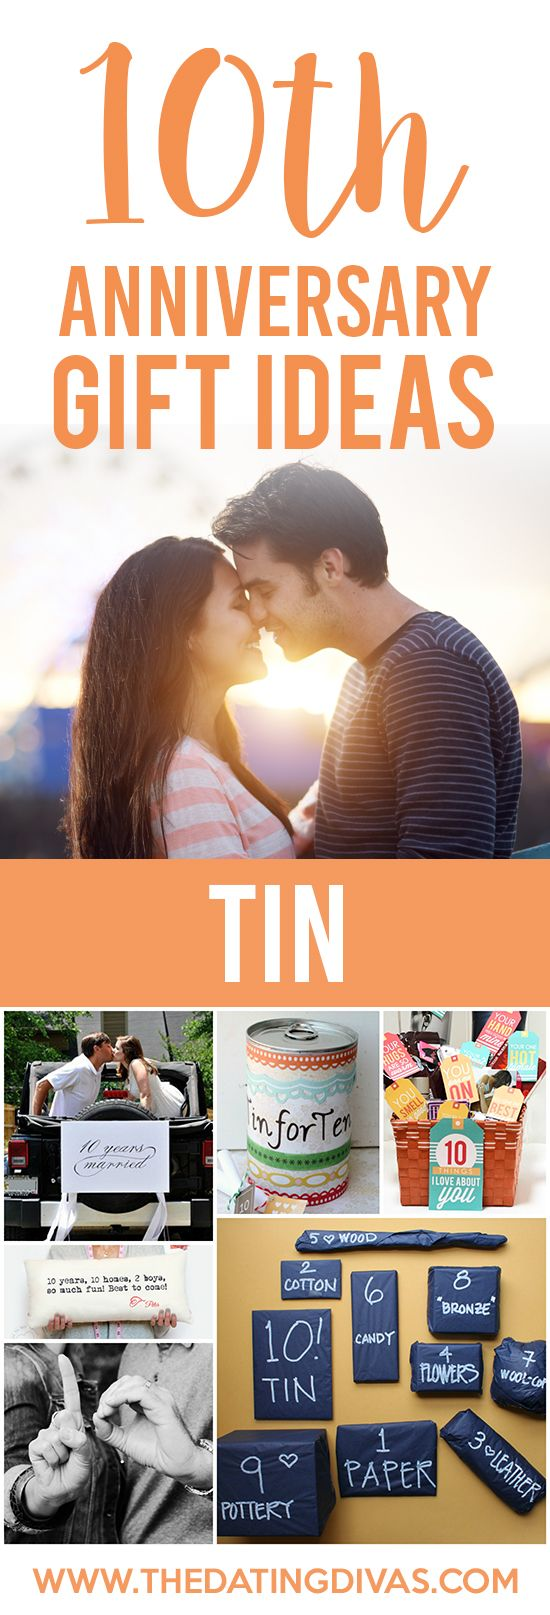 10th Anniversary Gift Ideas For Your TIN These Are ALL Soon Cute The